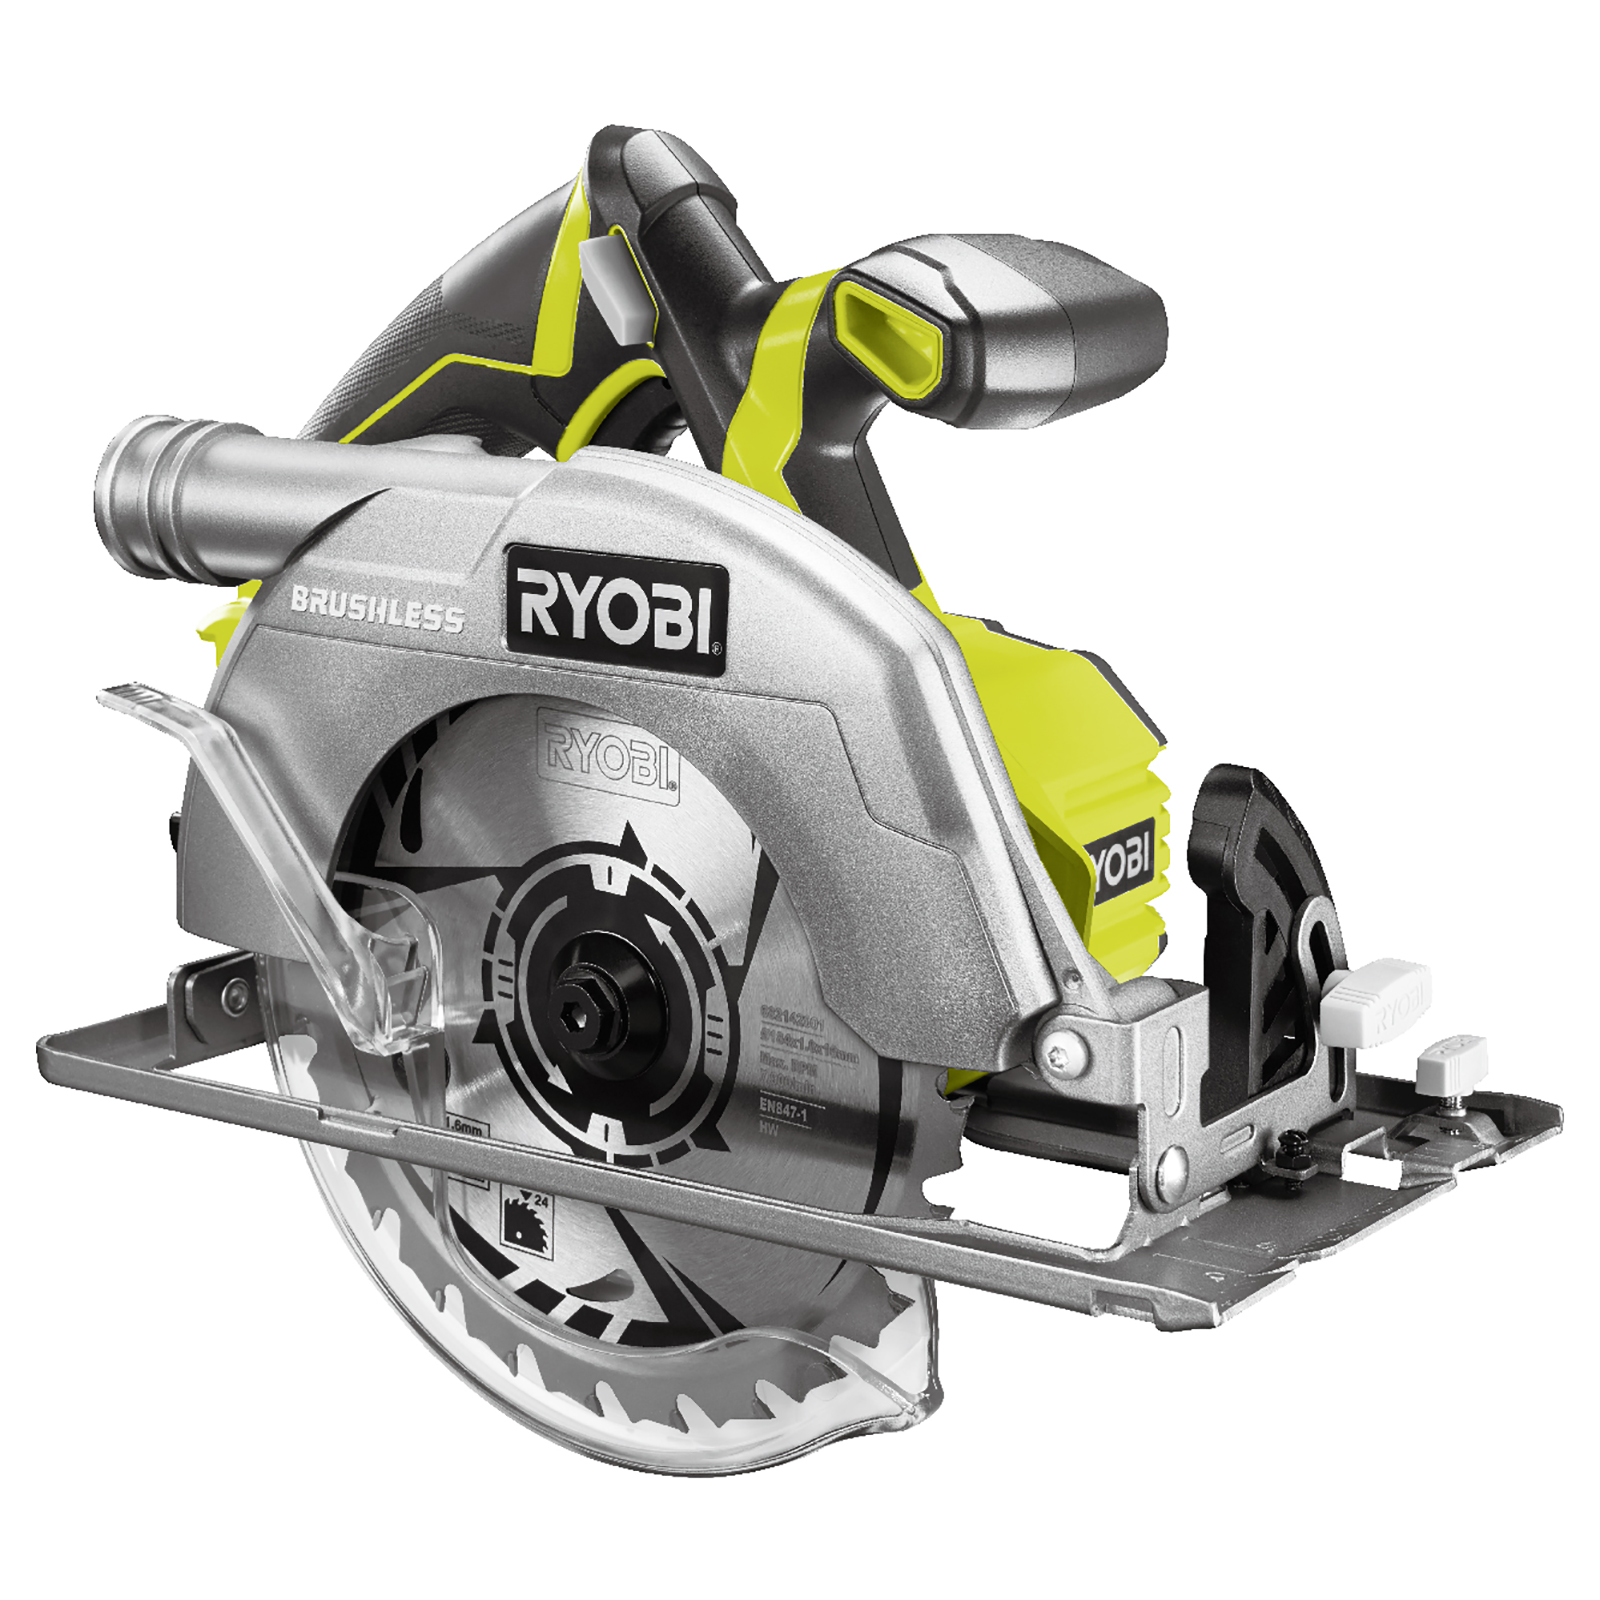 Ryobi 18v 7 14 inch brushless circular saw spotted tool craze last week we learned about a new ryobi 18v brushless angle grinder which is impressive news from ryobi they are in a relentless mission as are other keyboard keysfo